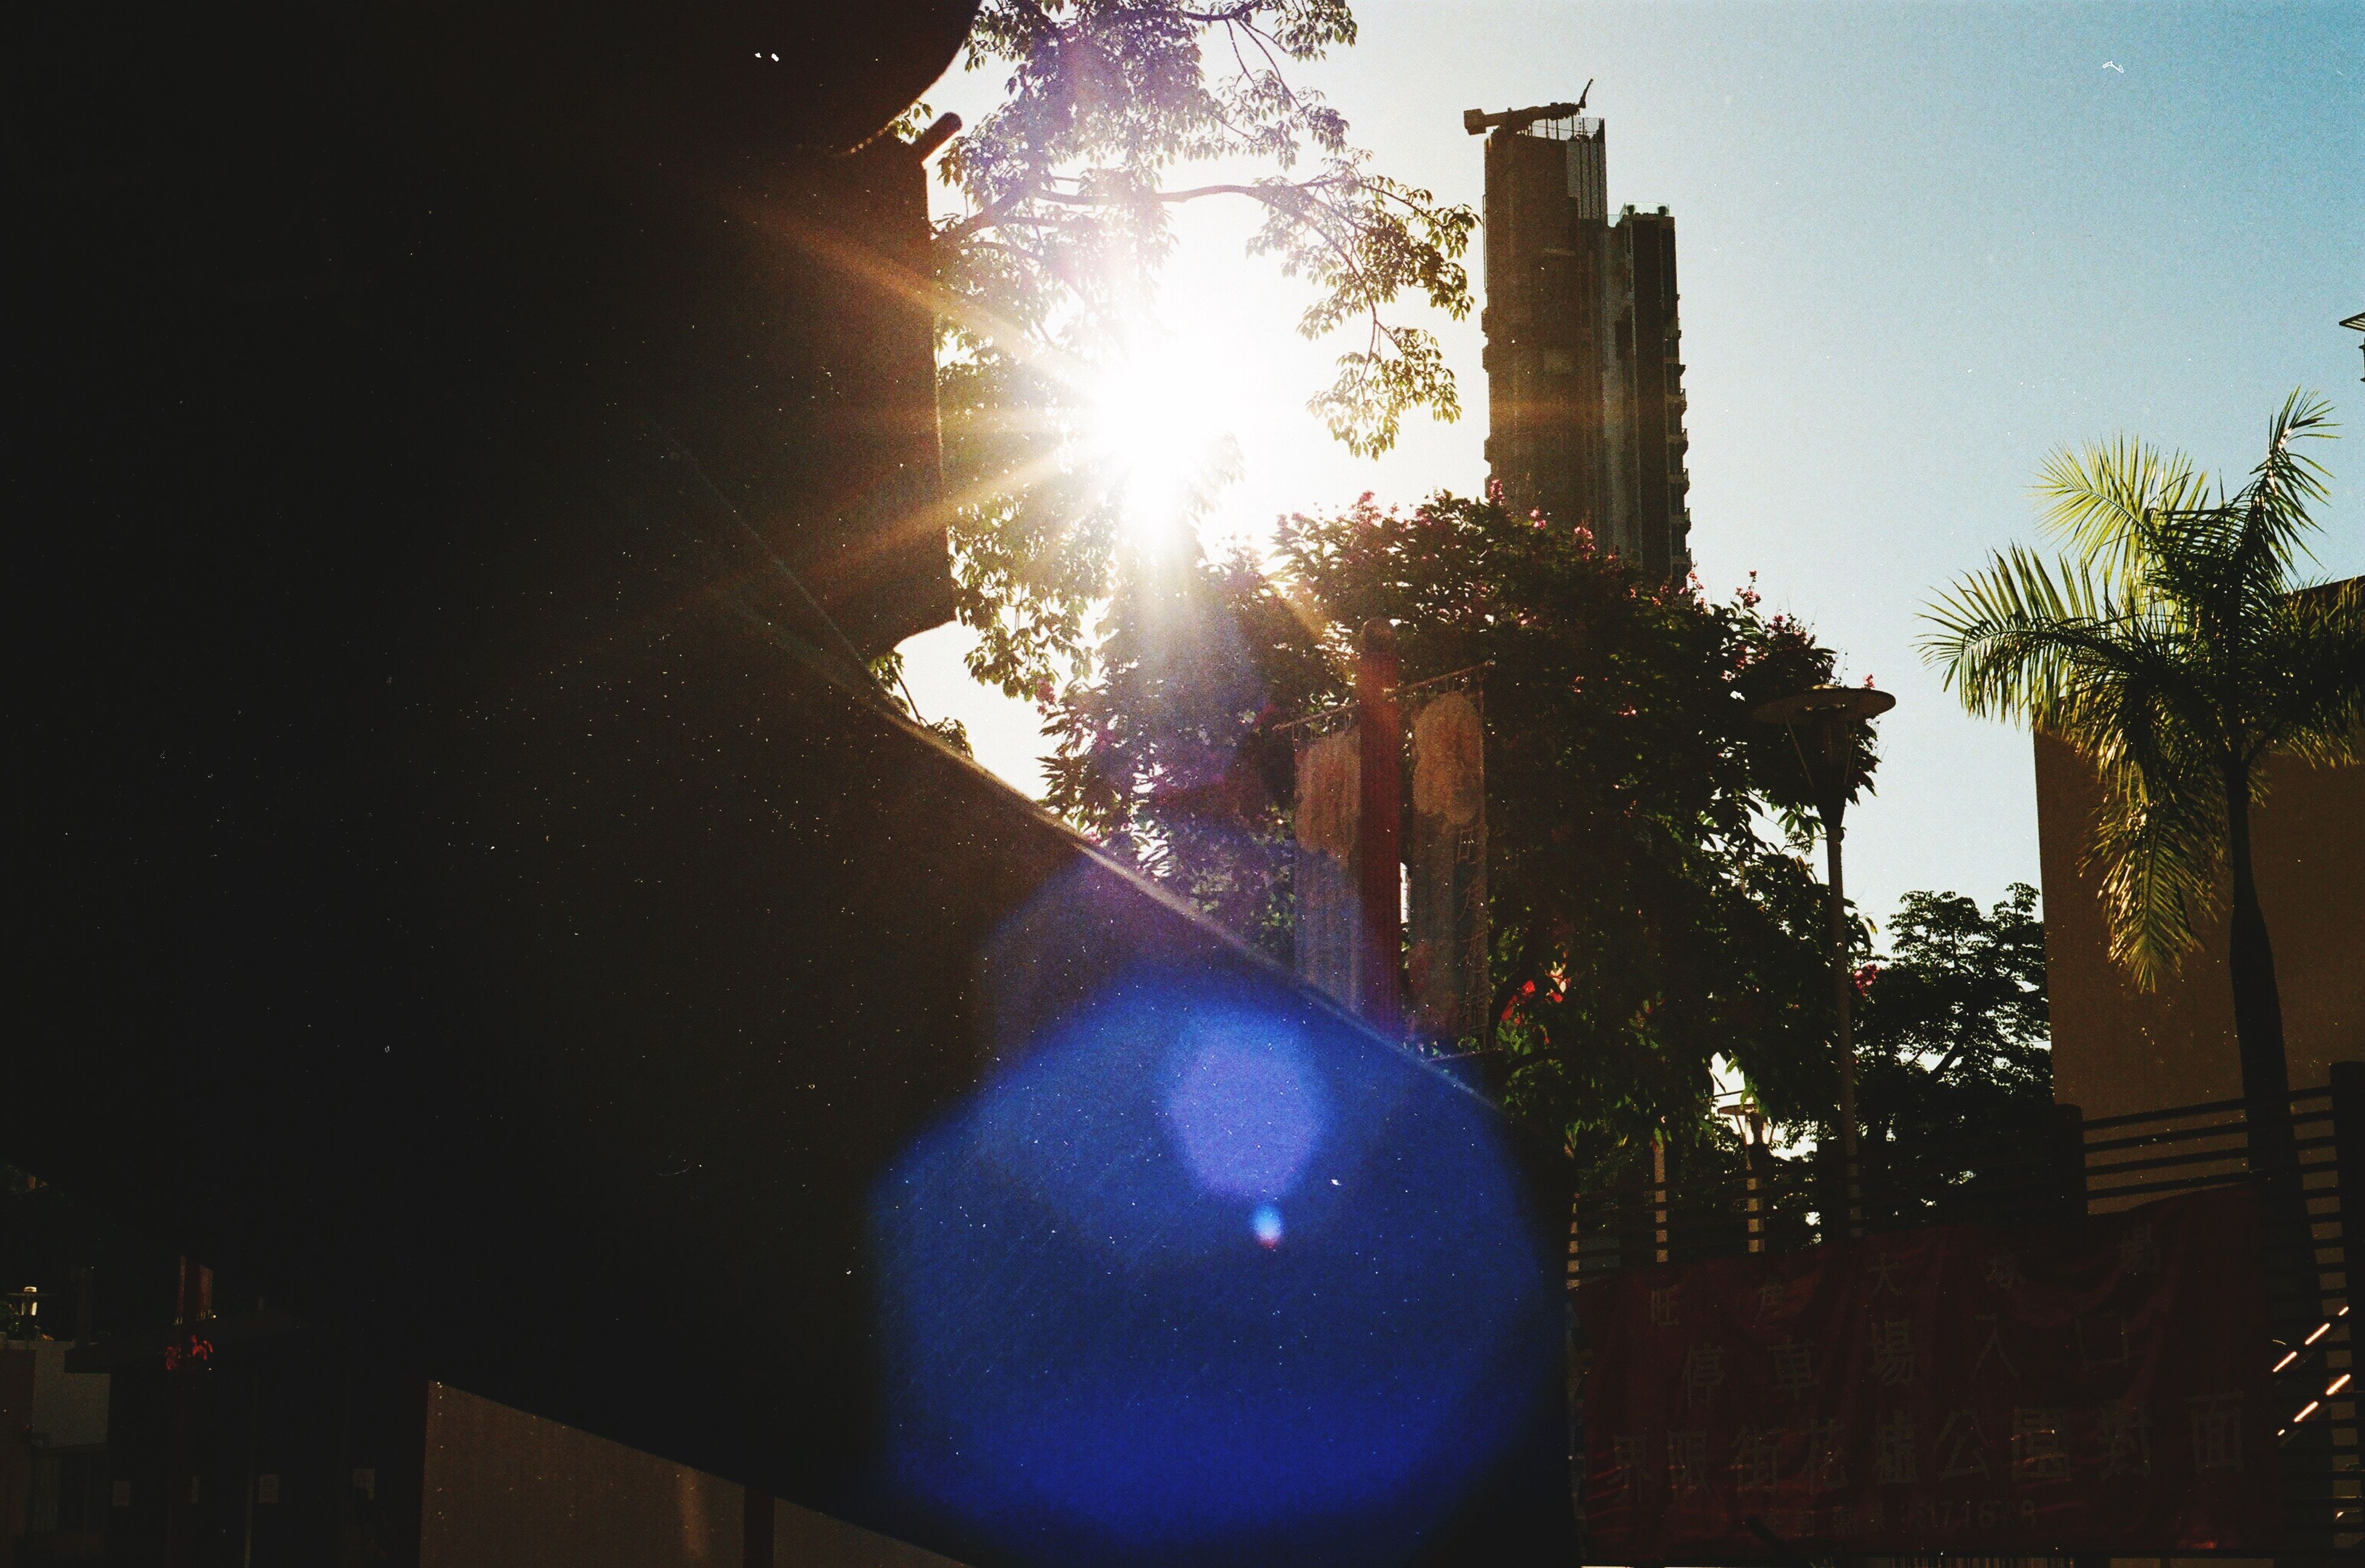 built structure, architecture, building exterior, sun, sunlight, low angle view, lens flare, sunbeam, clear sky, reflection, tree, blue, building, sunny, bright, sky, no people, outdoors, city, street light